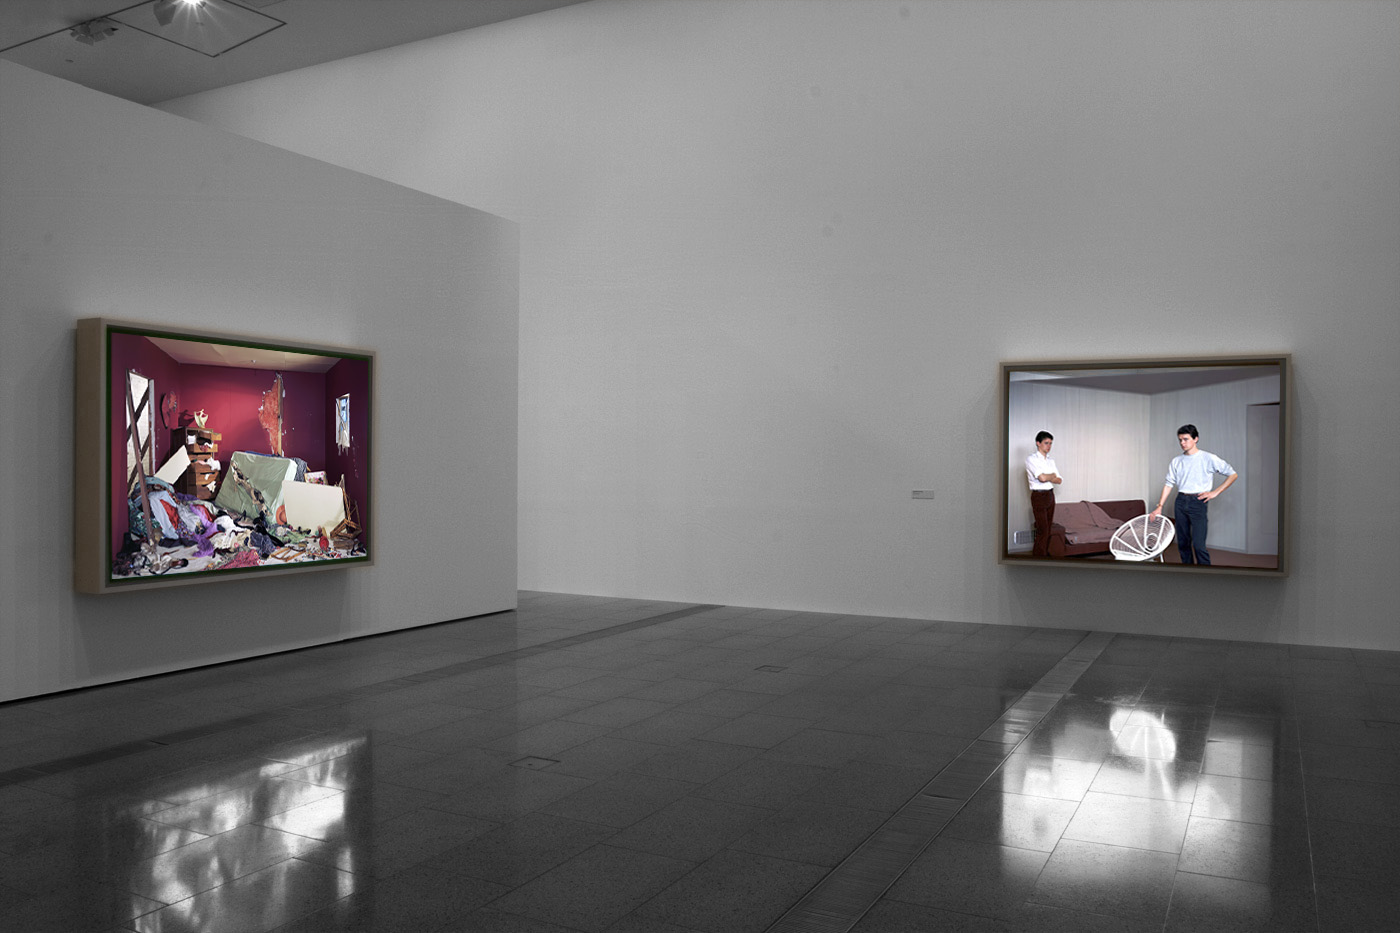 Installation view of jeff wall photographs at ngv australia showing at left